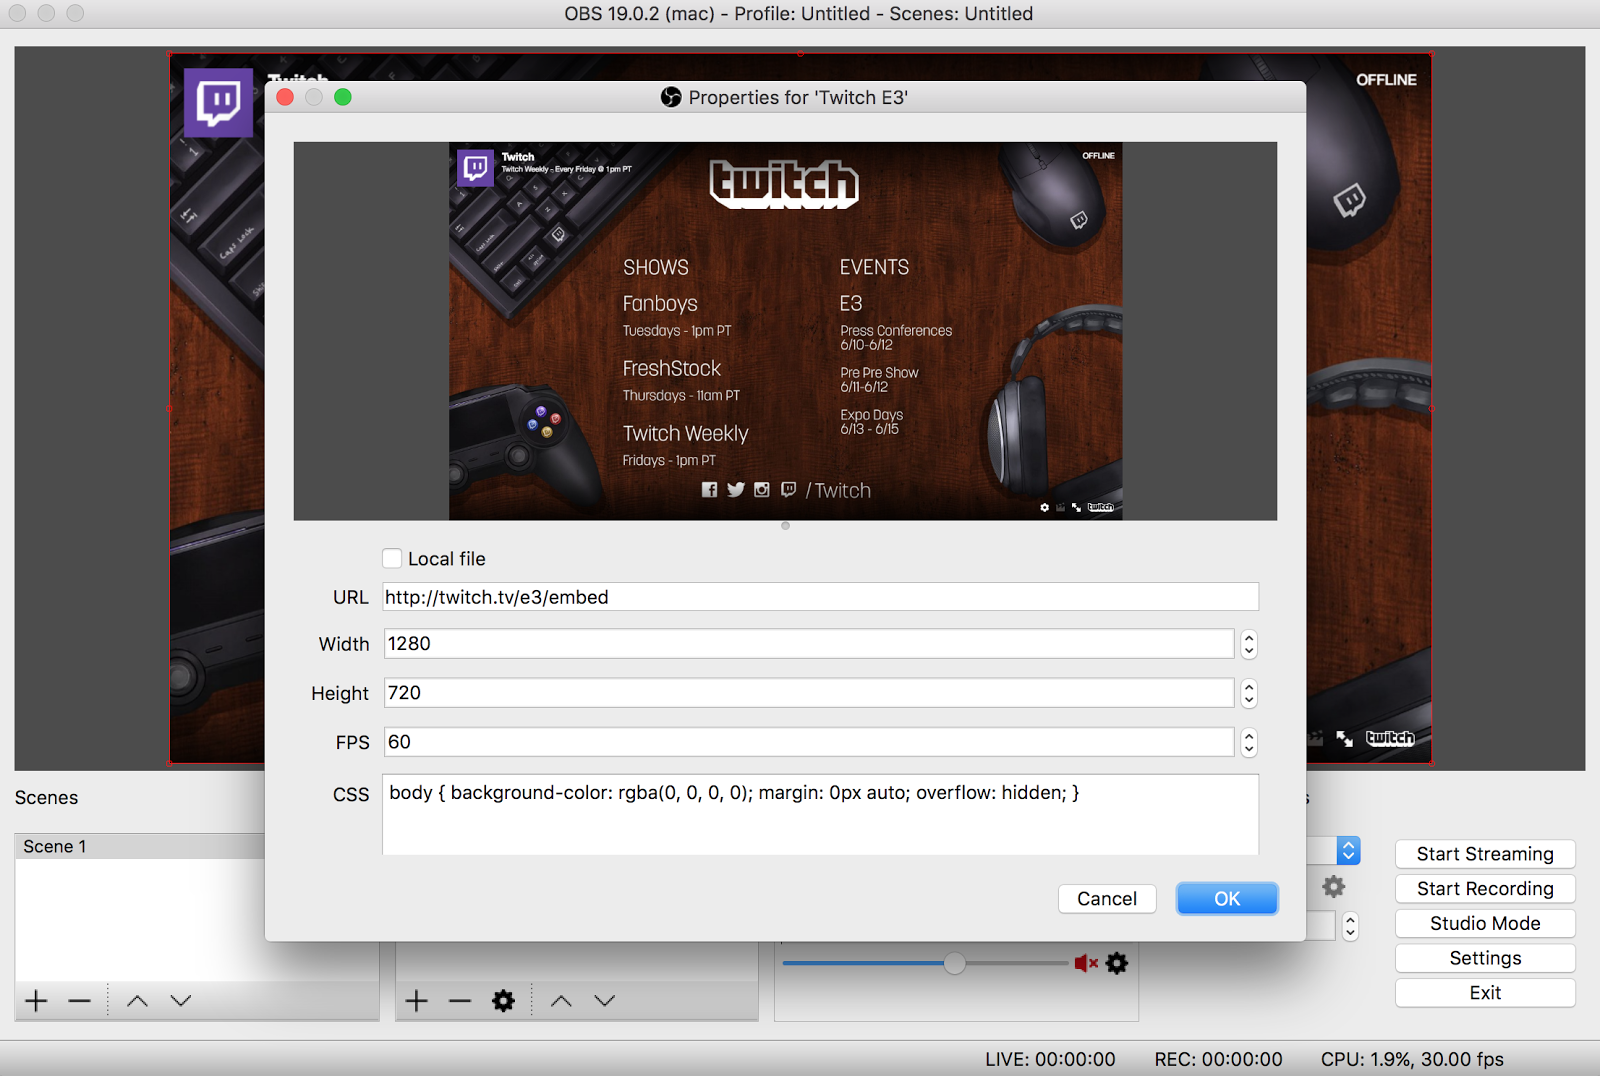 A step-by-step guide to Co-streaming E3 on Twitch \u2013 Twitch Blog